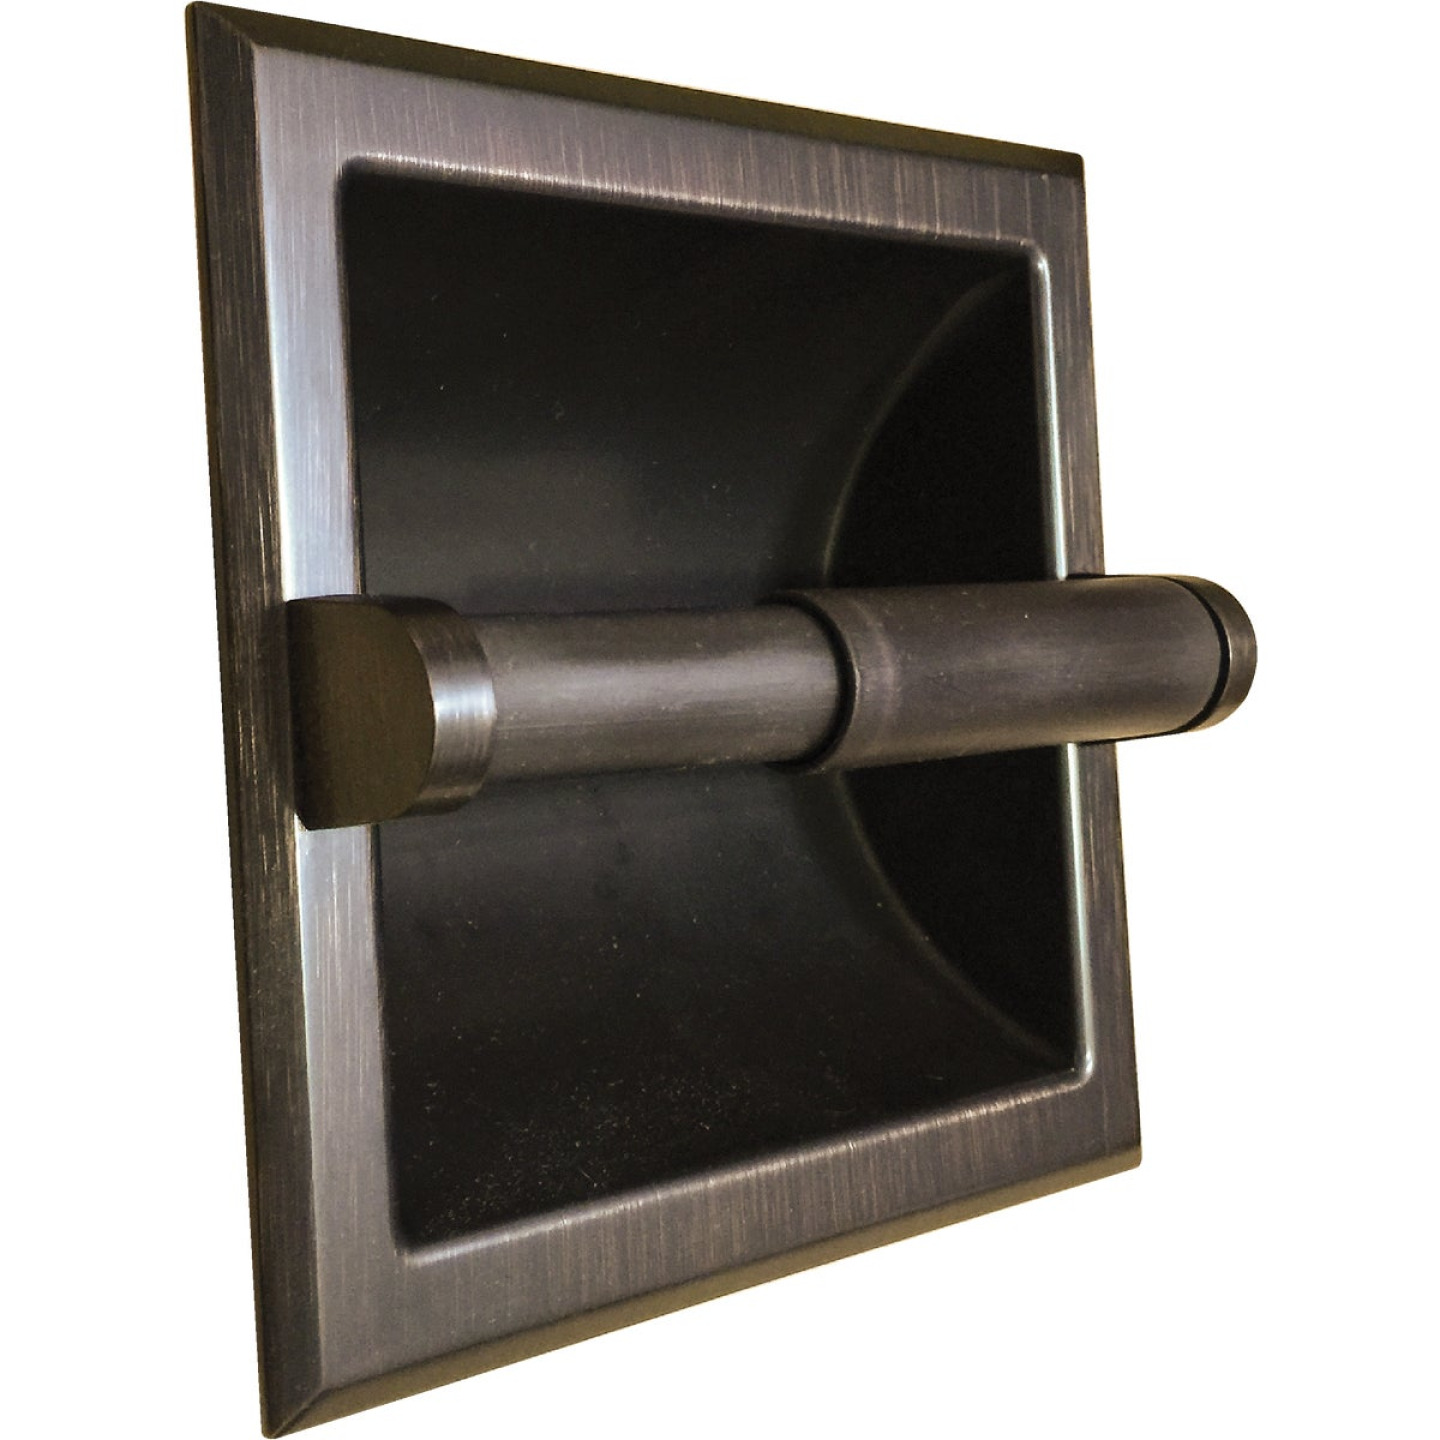 Home Impressions Aria Oil Rubbed Bronze Recessed Toilet Paper Holder Portage Lumber